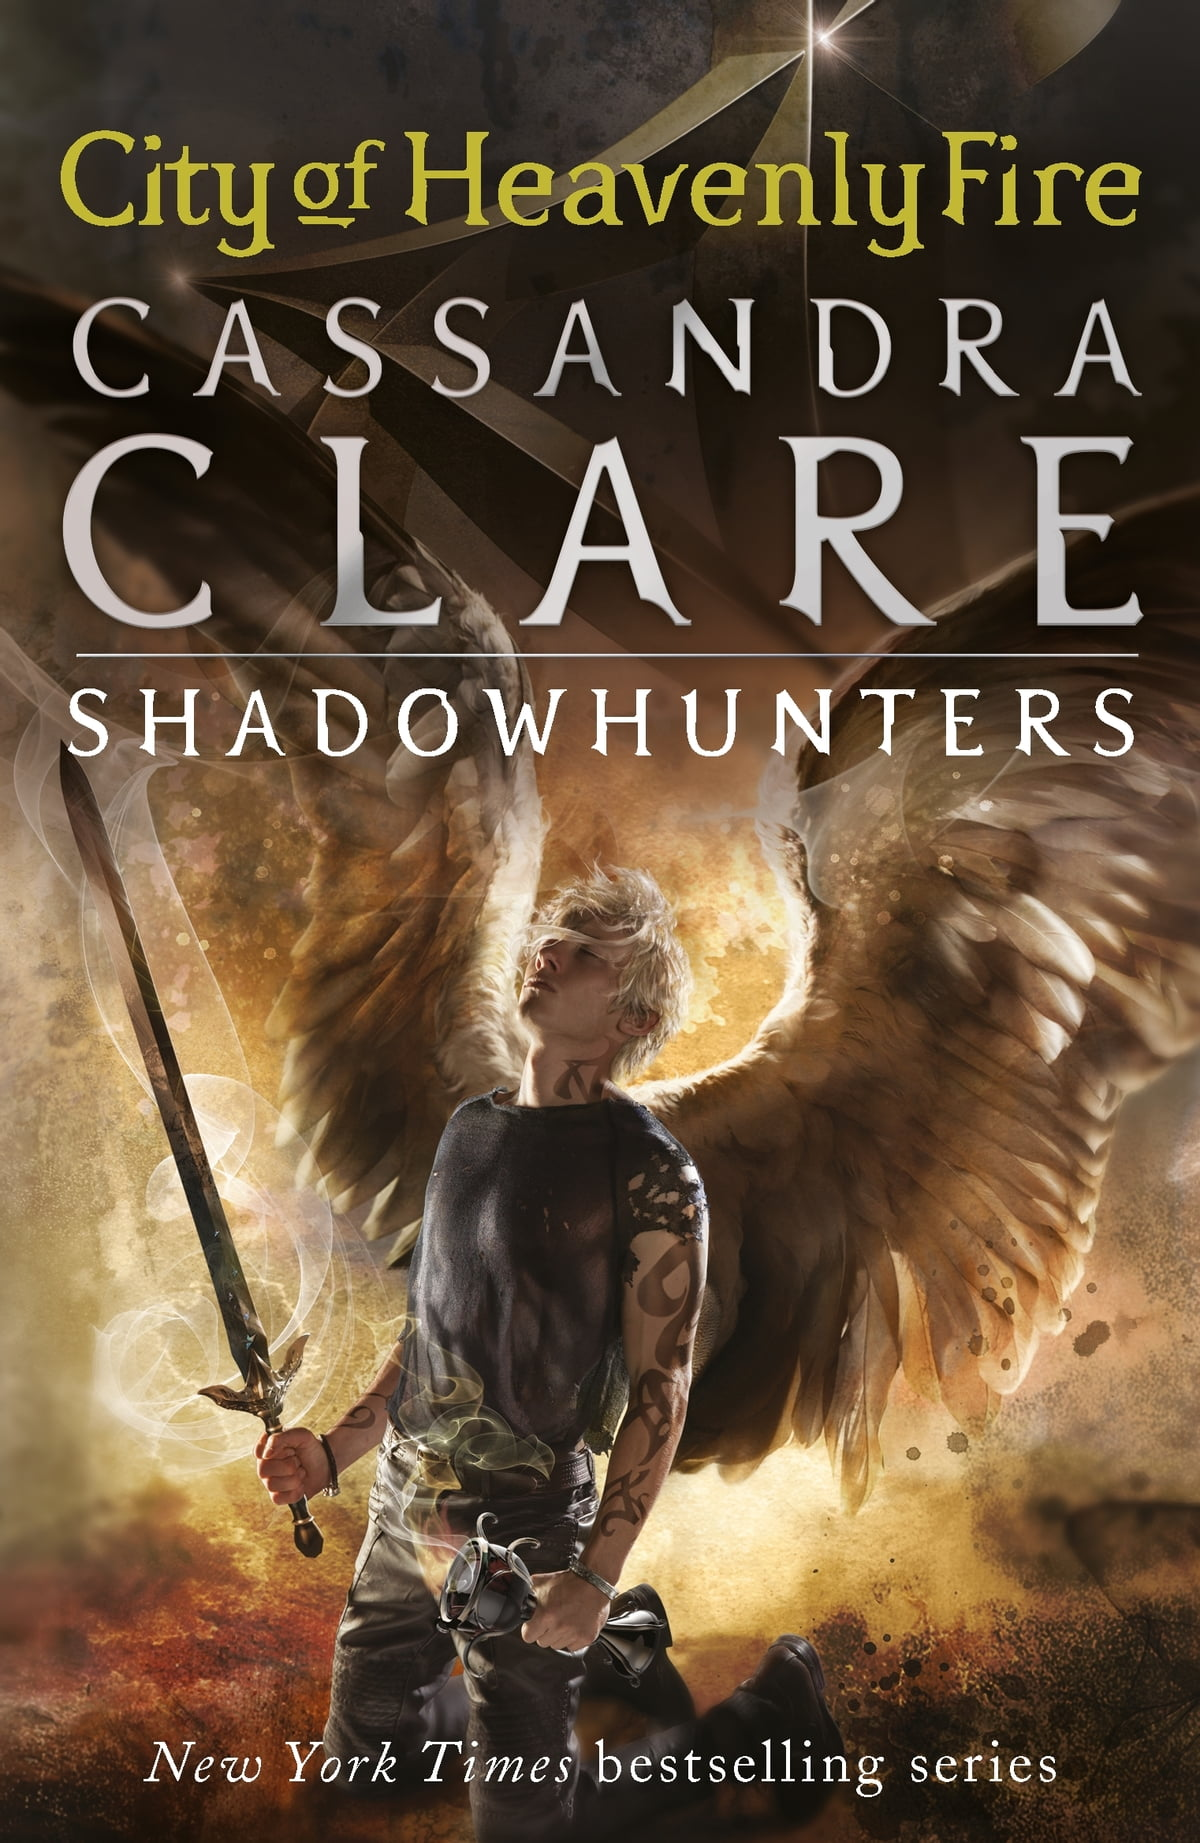 Read City Of Heavenly Fire The Mortal Instruments 6 By Cassandra Clare